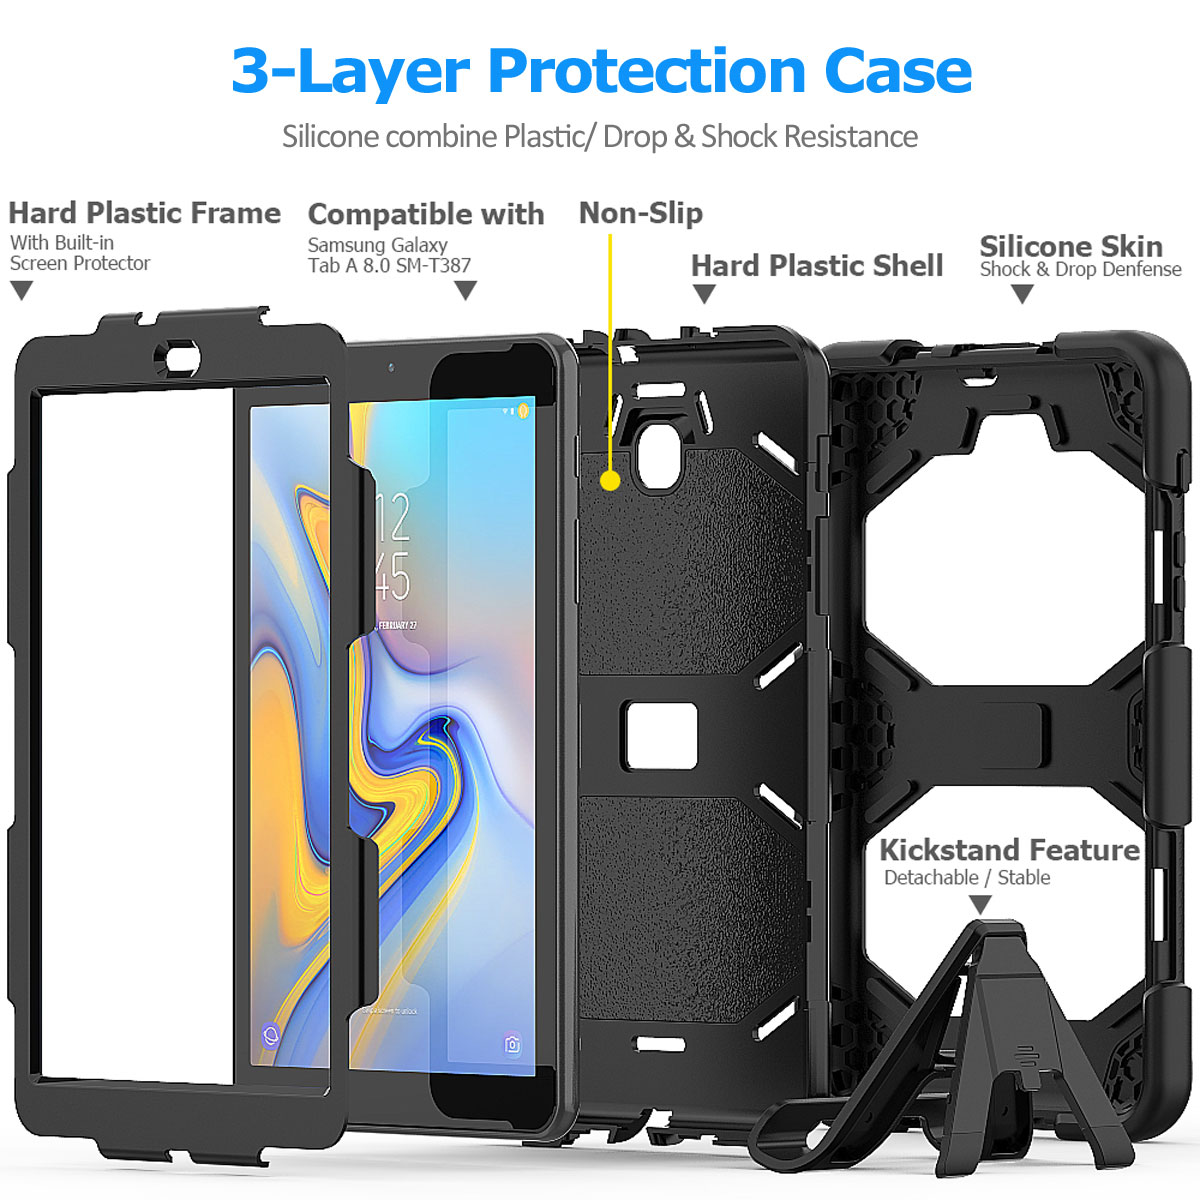 Rugged-Hard-Case-For-Samsung-Galaxy-Tab-A-8-0-2018-SM-T387-with-Screen-Protector thumbnail 56